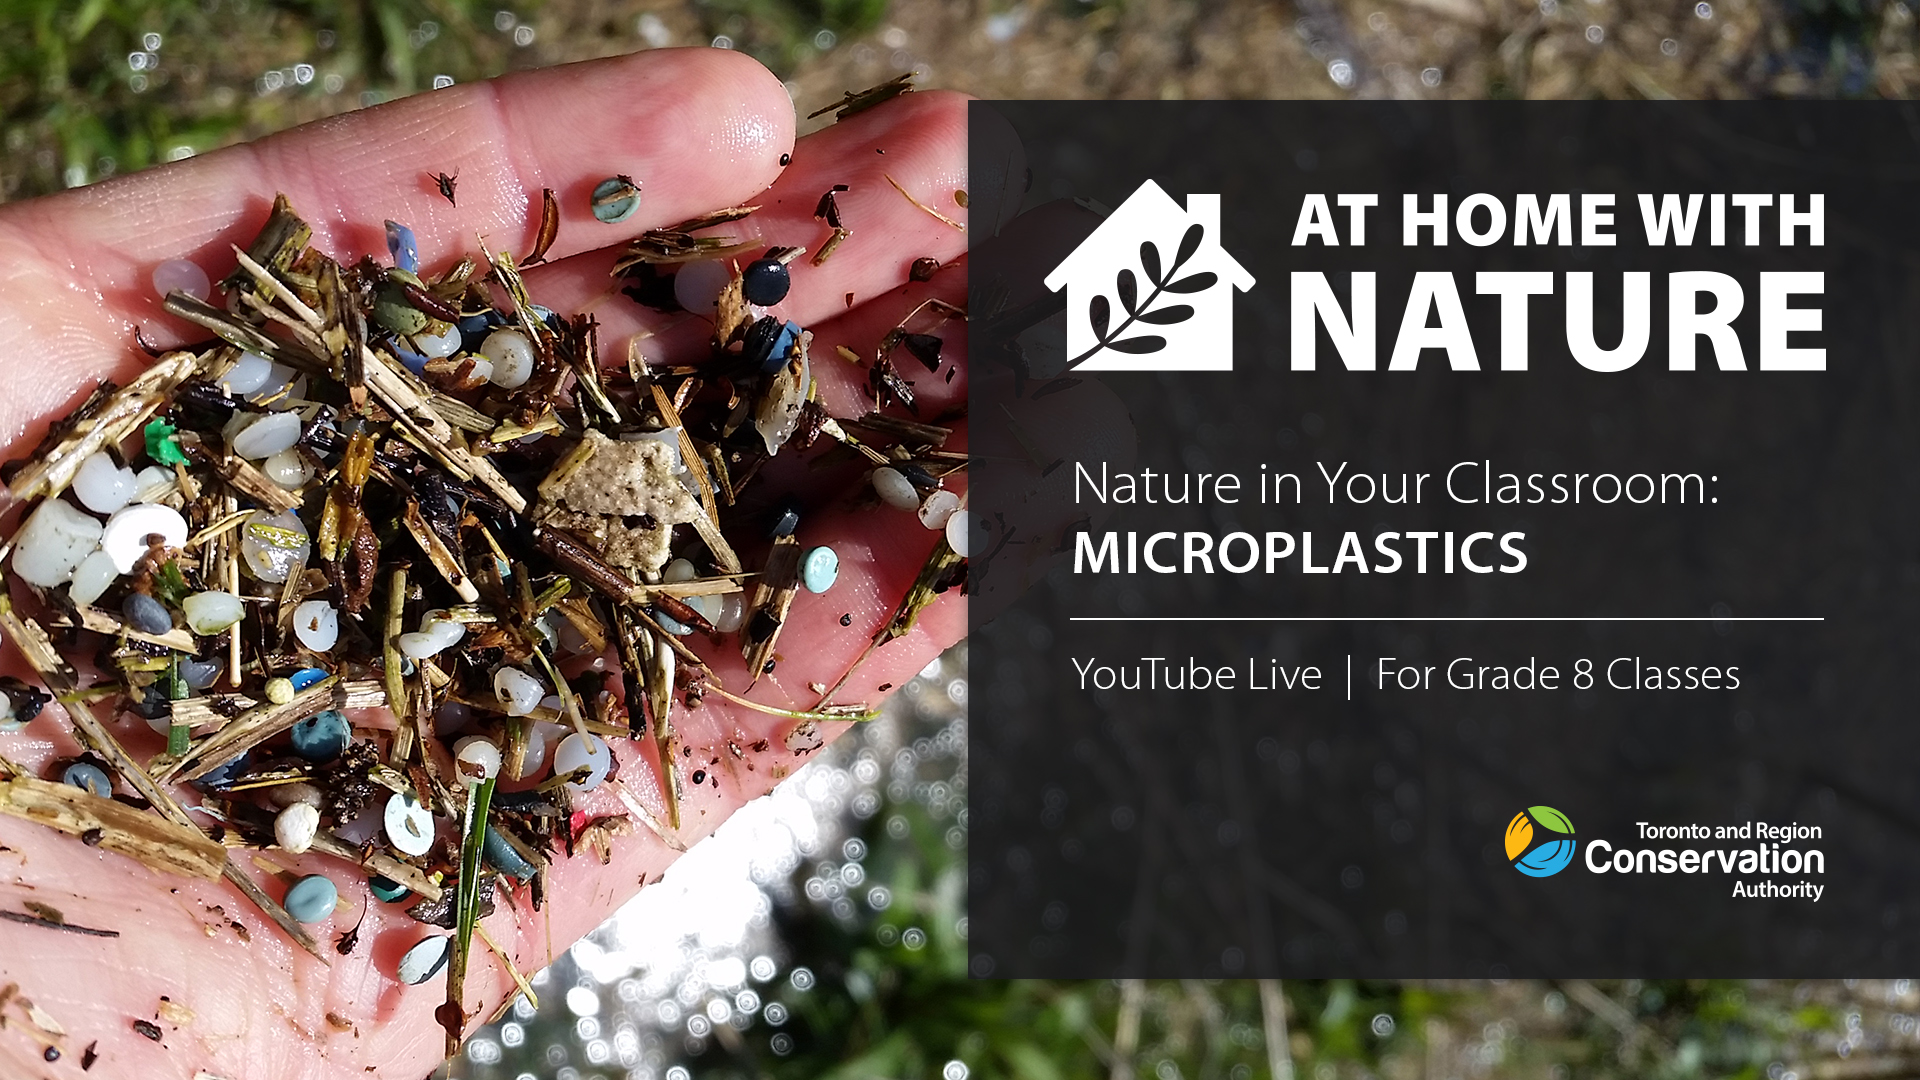 Nature in Your Classroom - Microplastics